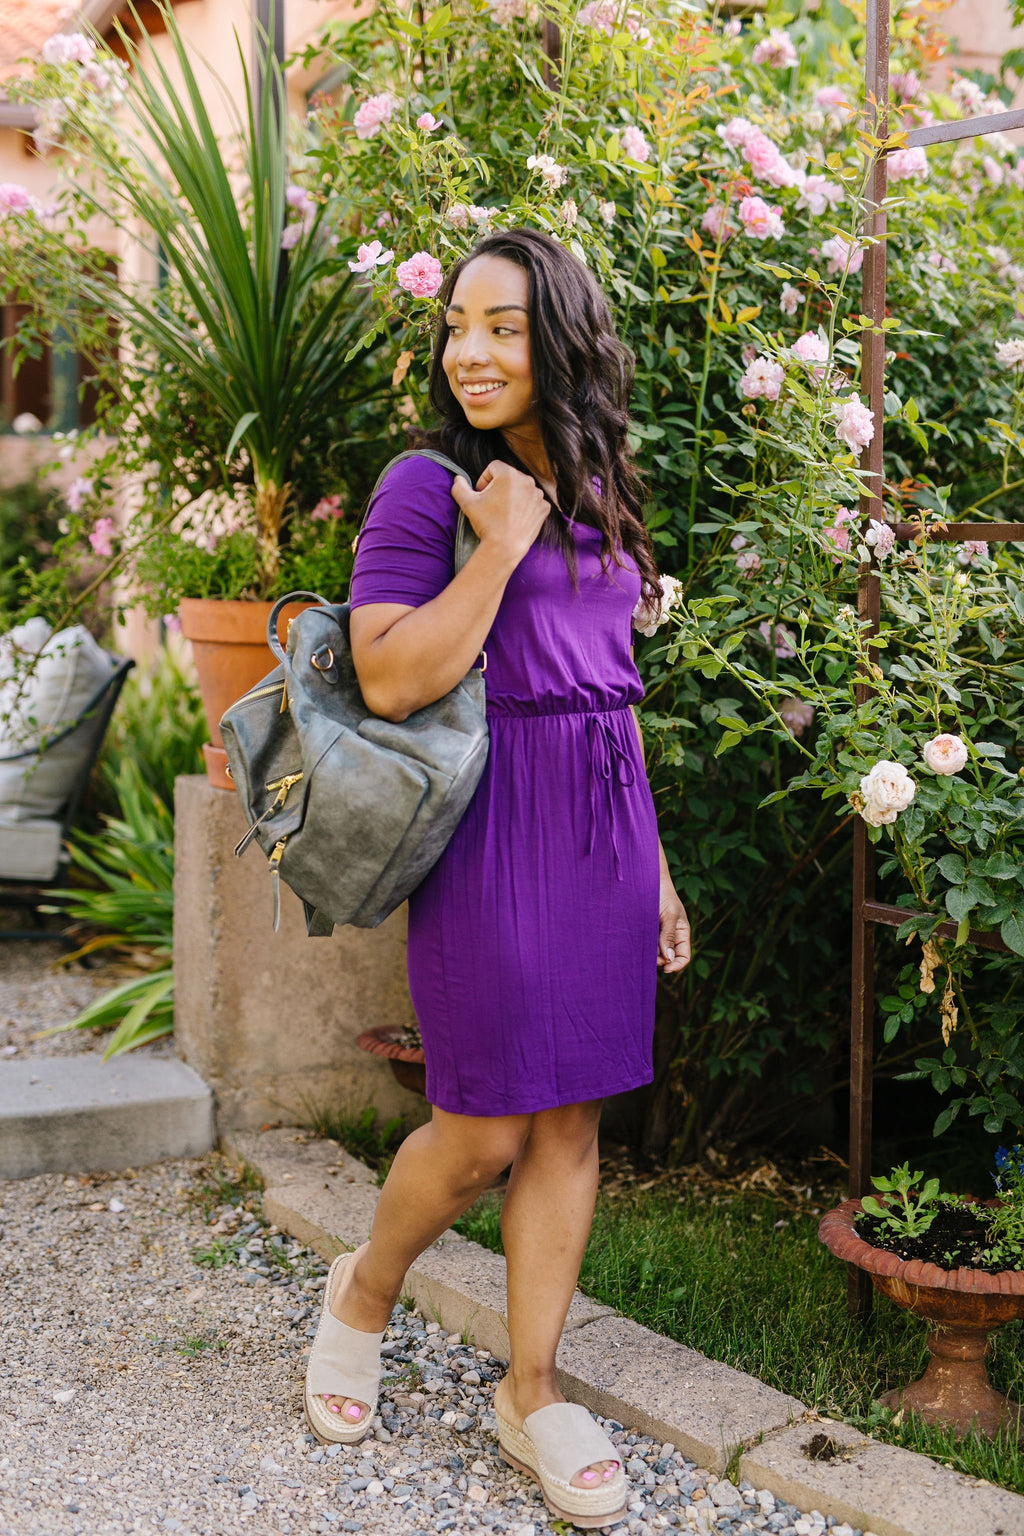 Cute Comfort Dress In Purple-1XL, 2XL, 3XL, 8-13-2020, BFCM2020, Dresses, Group A, Group B, Group C, Group D, Group T, Large, Medium, Plus, Small, XL, XS-Womens Artisan USA American Made Clothing Accessories